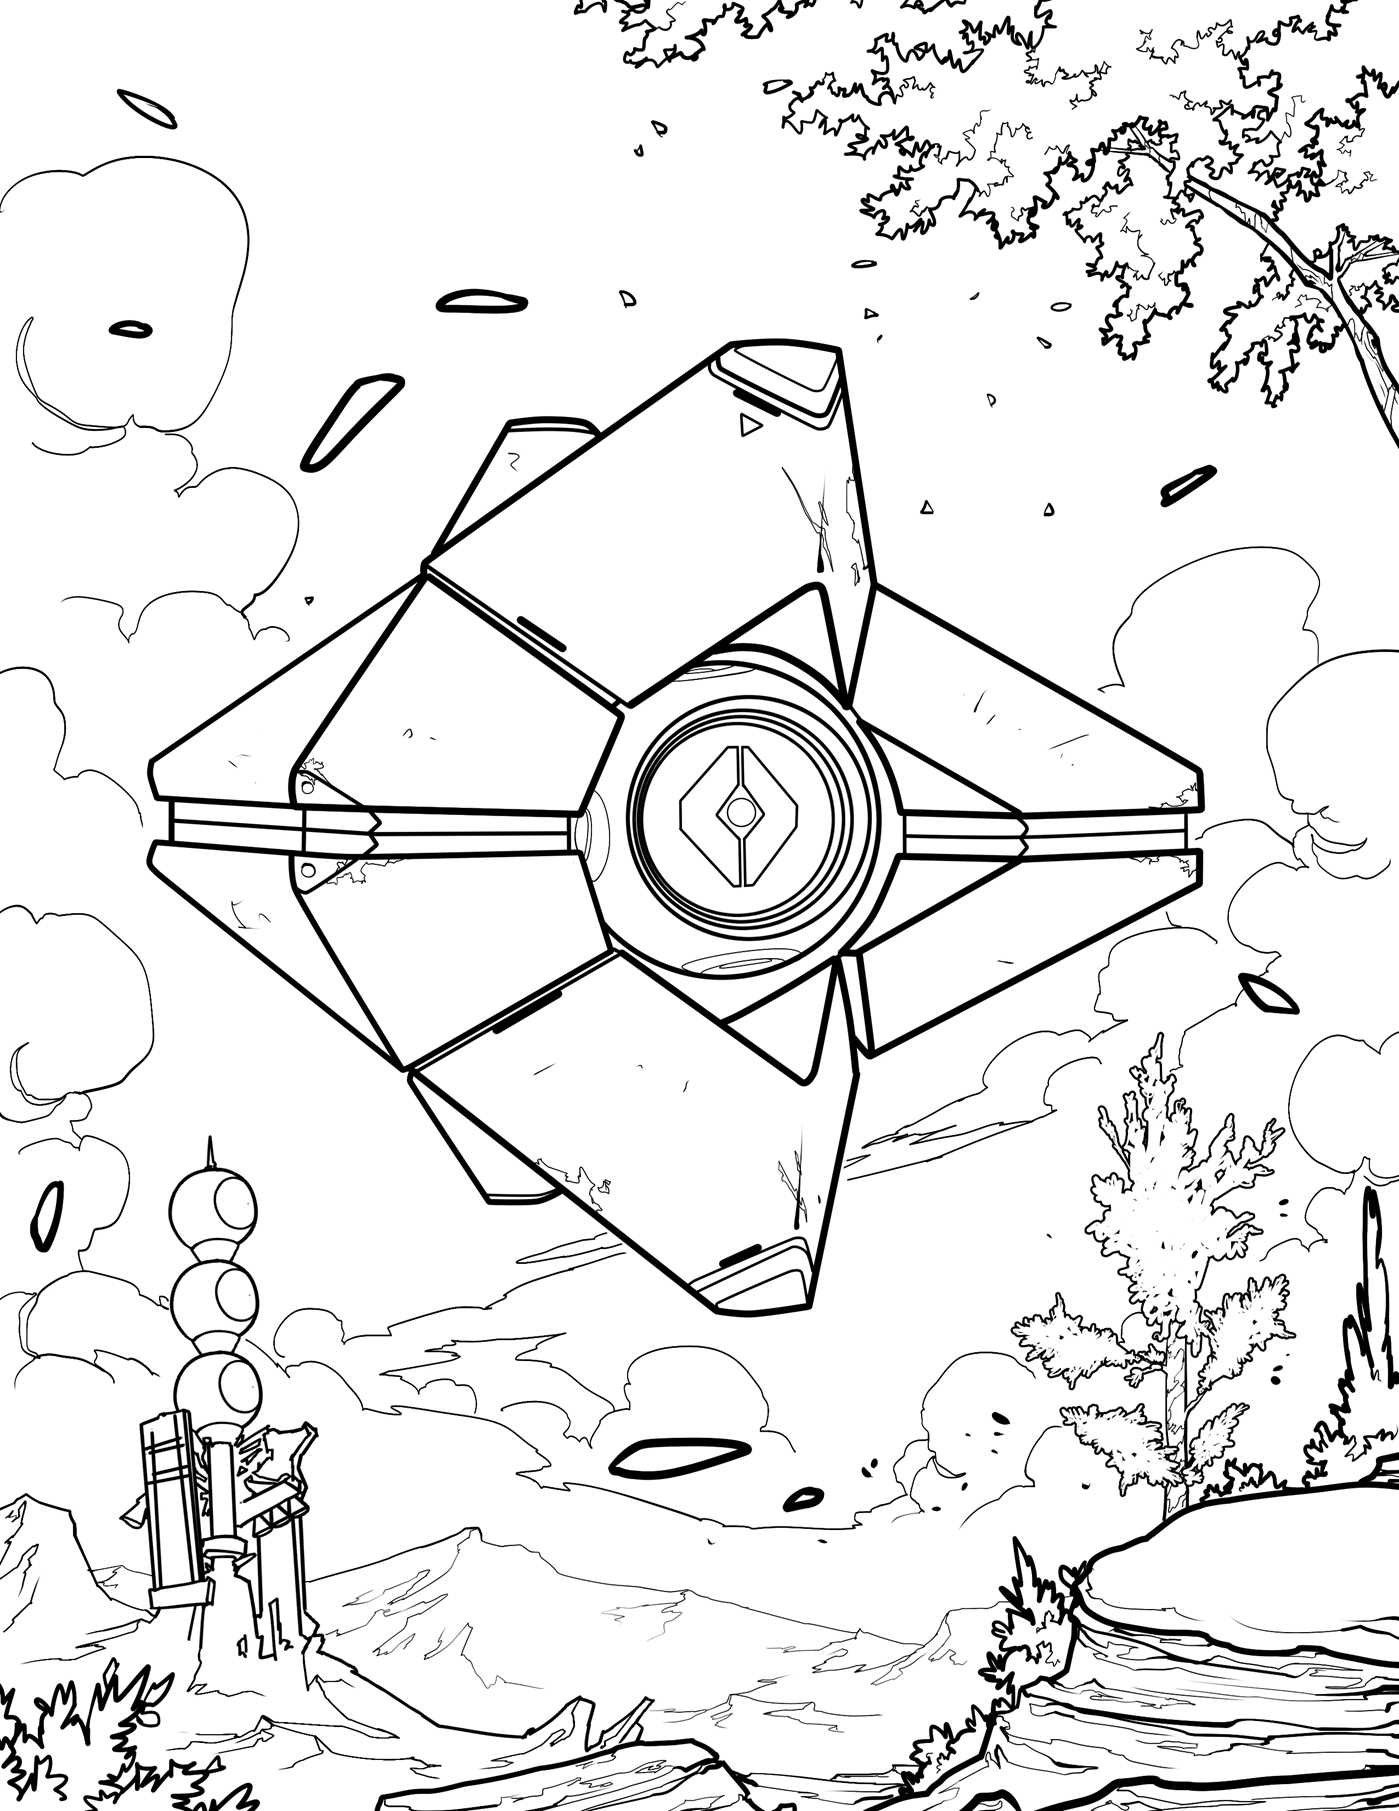 Destiny Coloring Page Star Wars Coloring Book Destiny Game Coloring Pages